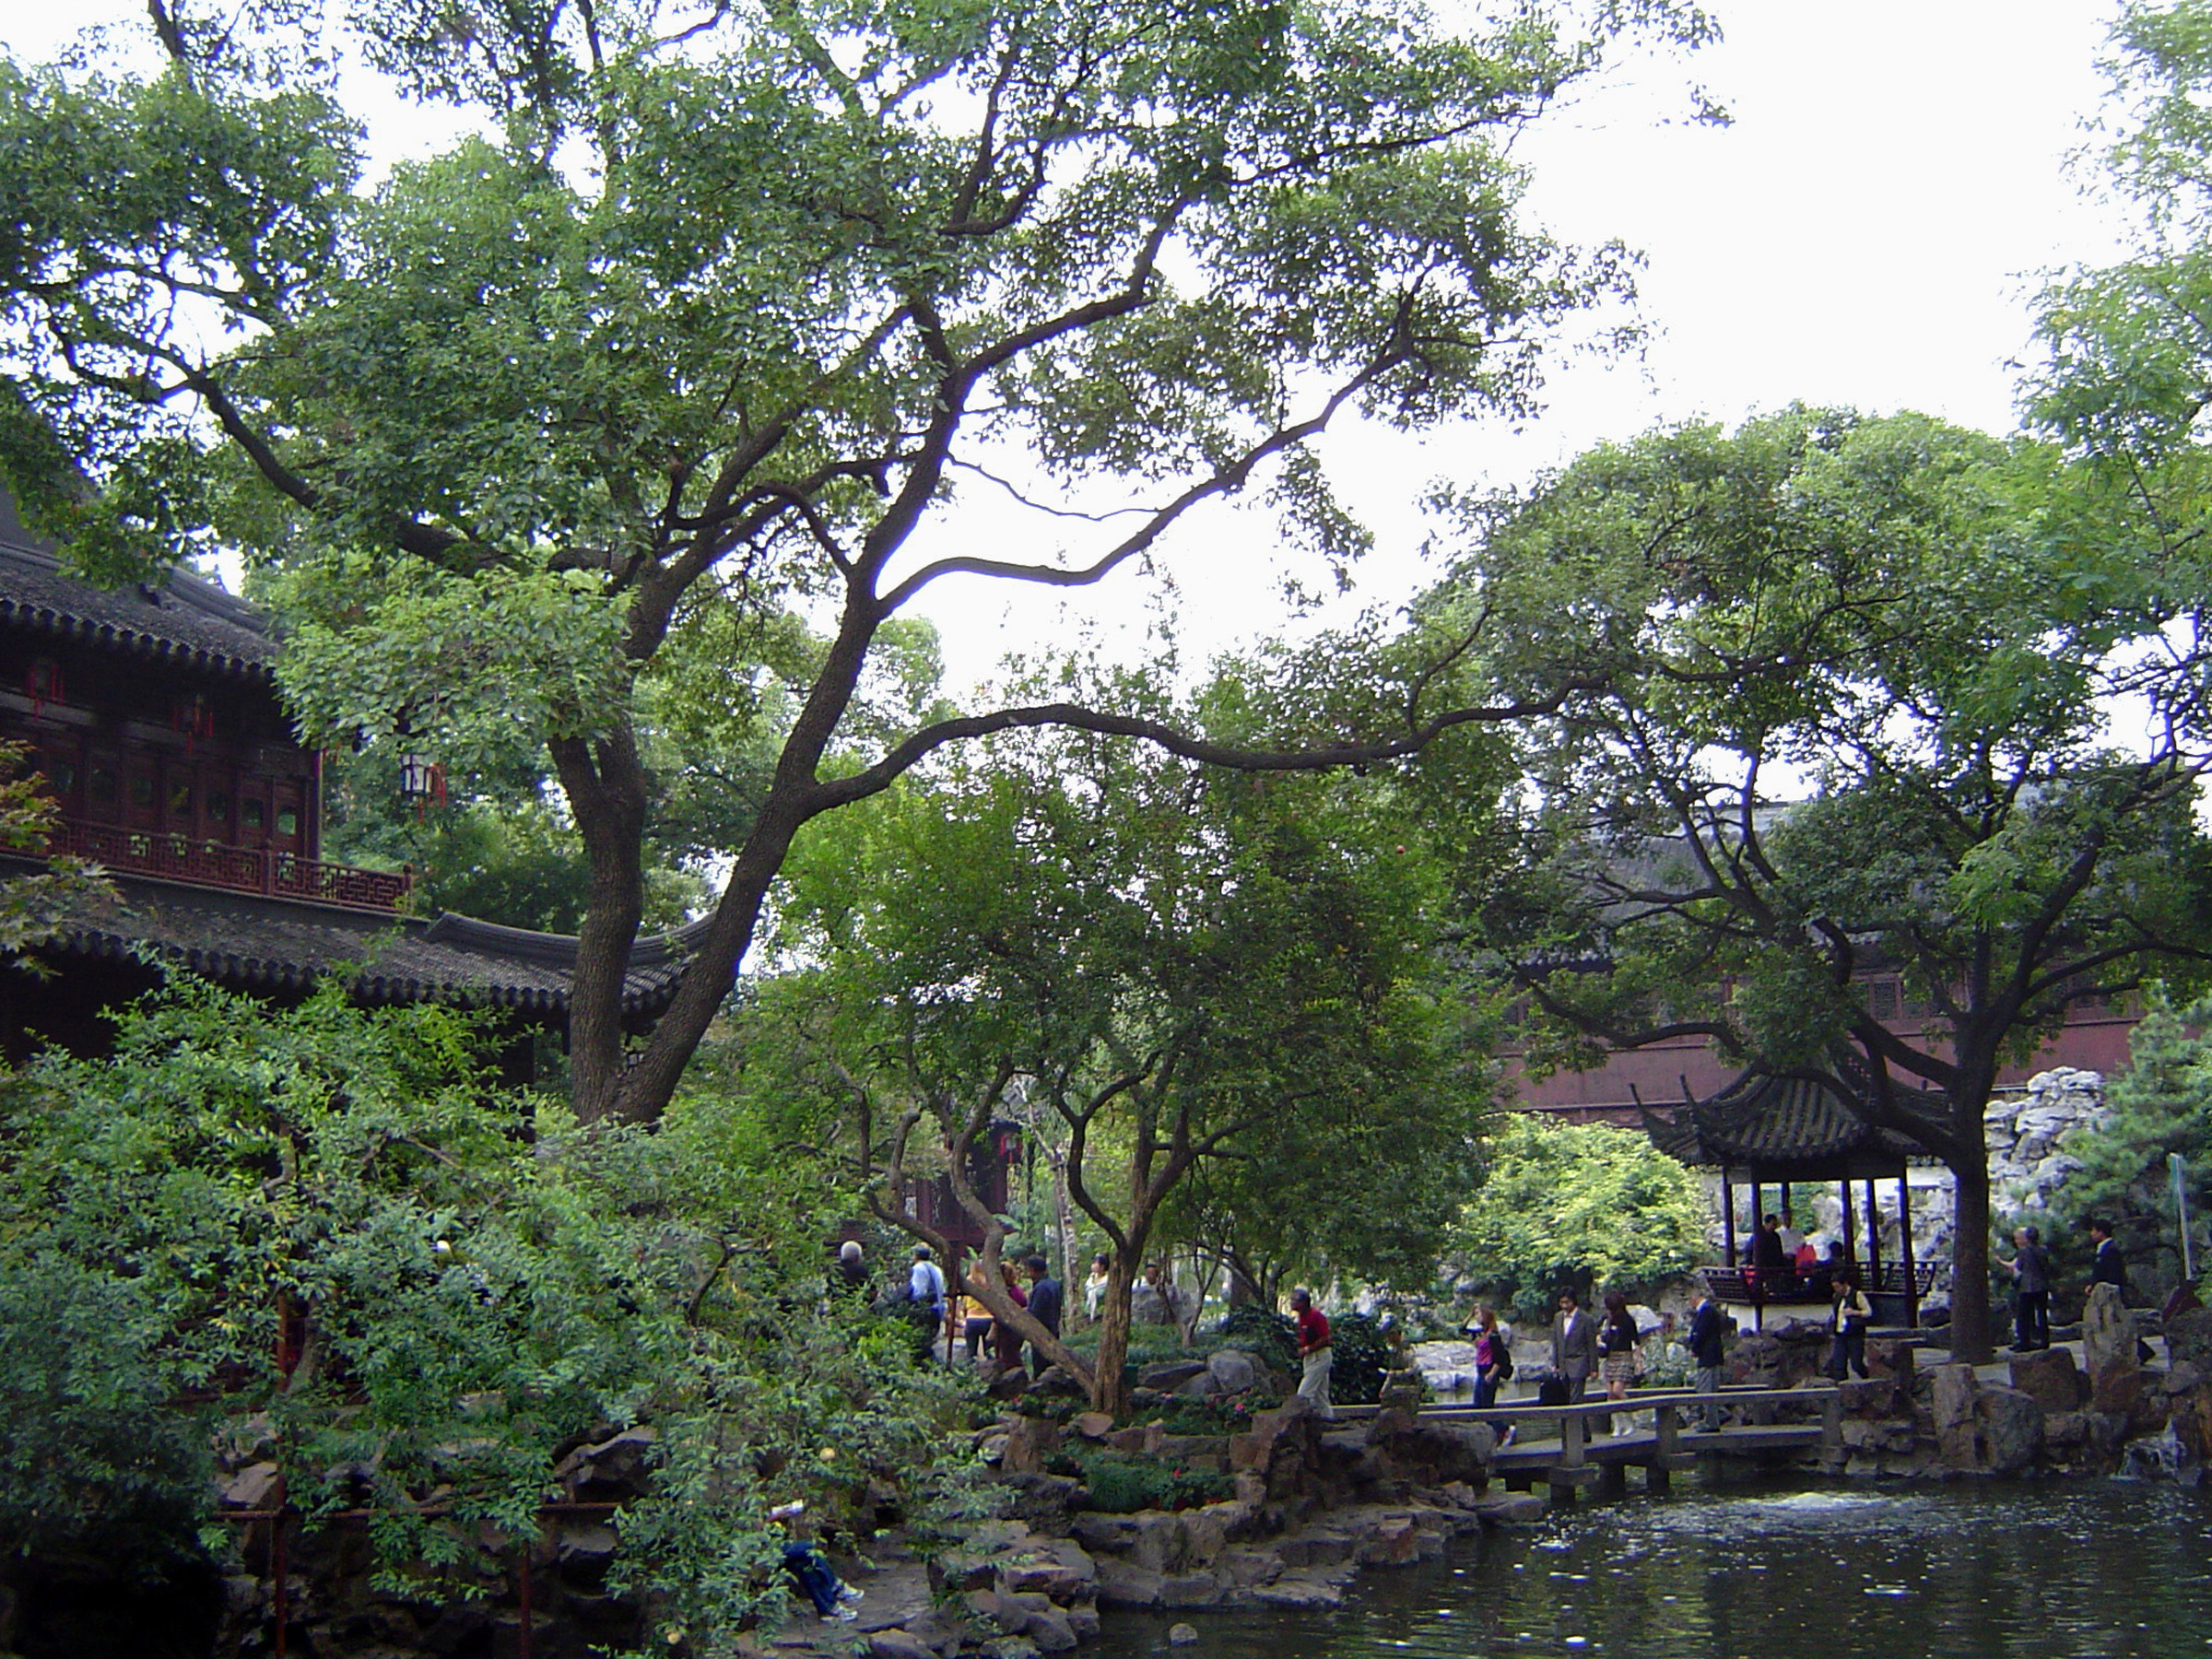 Tall Green Trees and Traditional Structures at Chinese Gardens in Shanghai